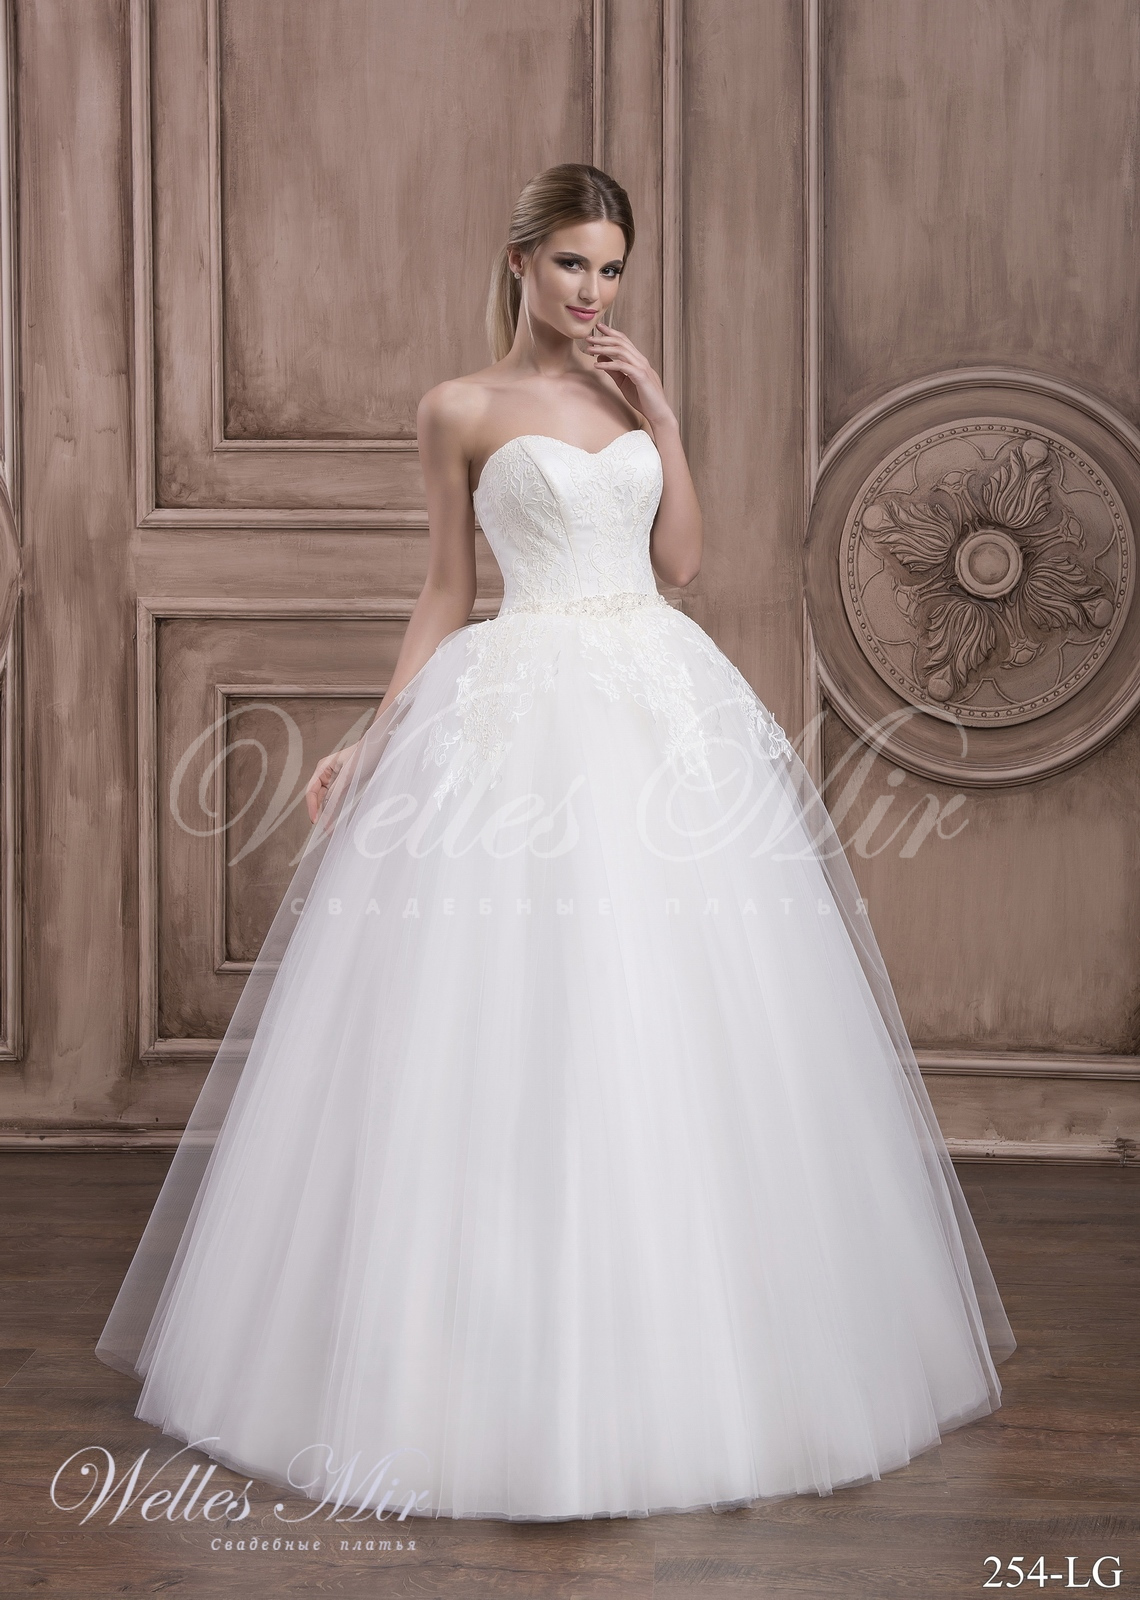 Wedding dresses 254-LG